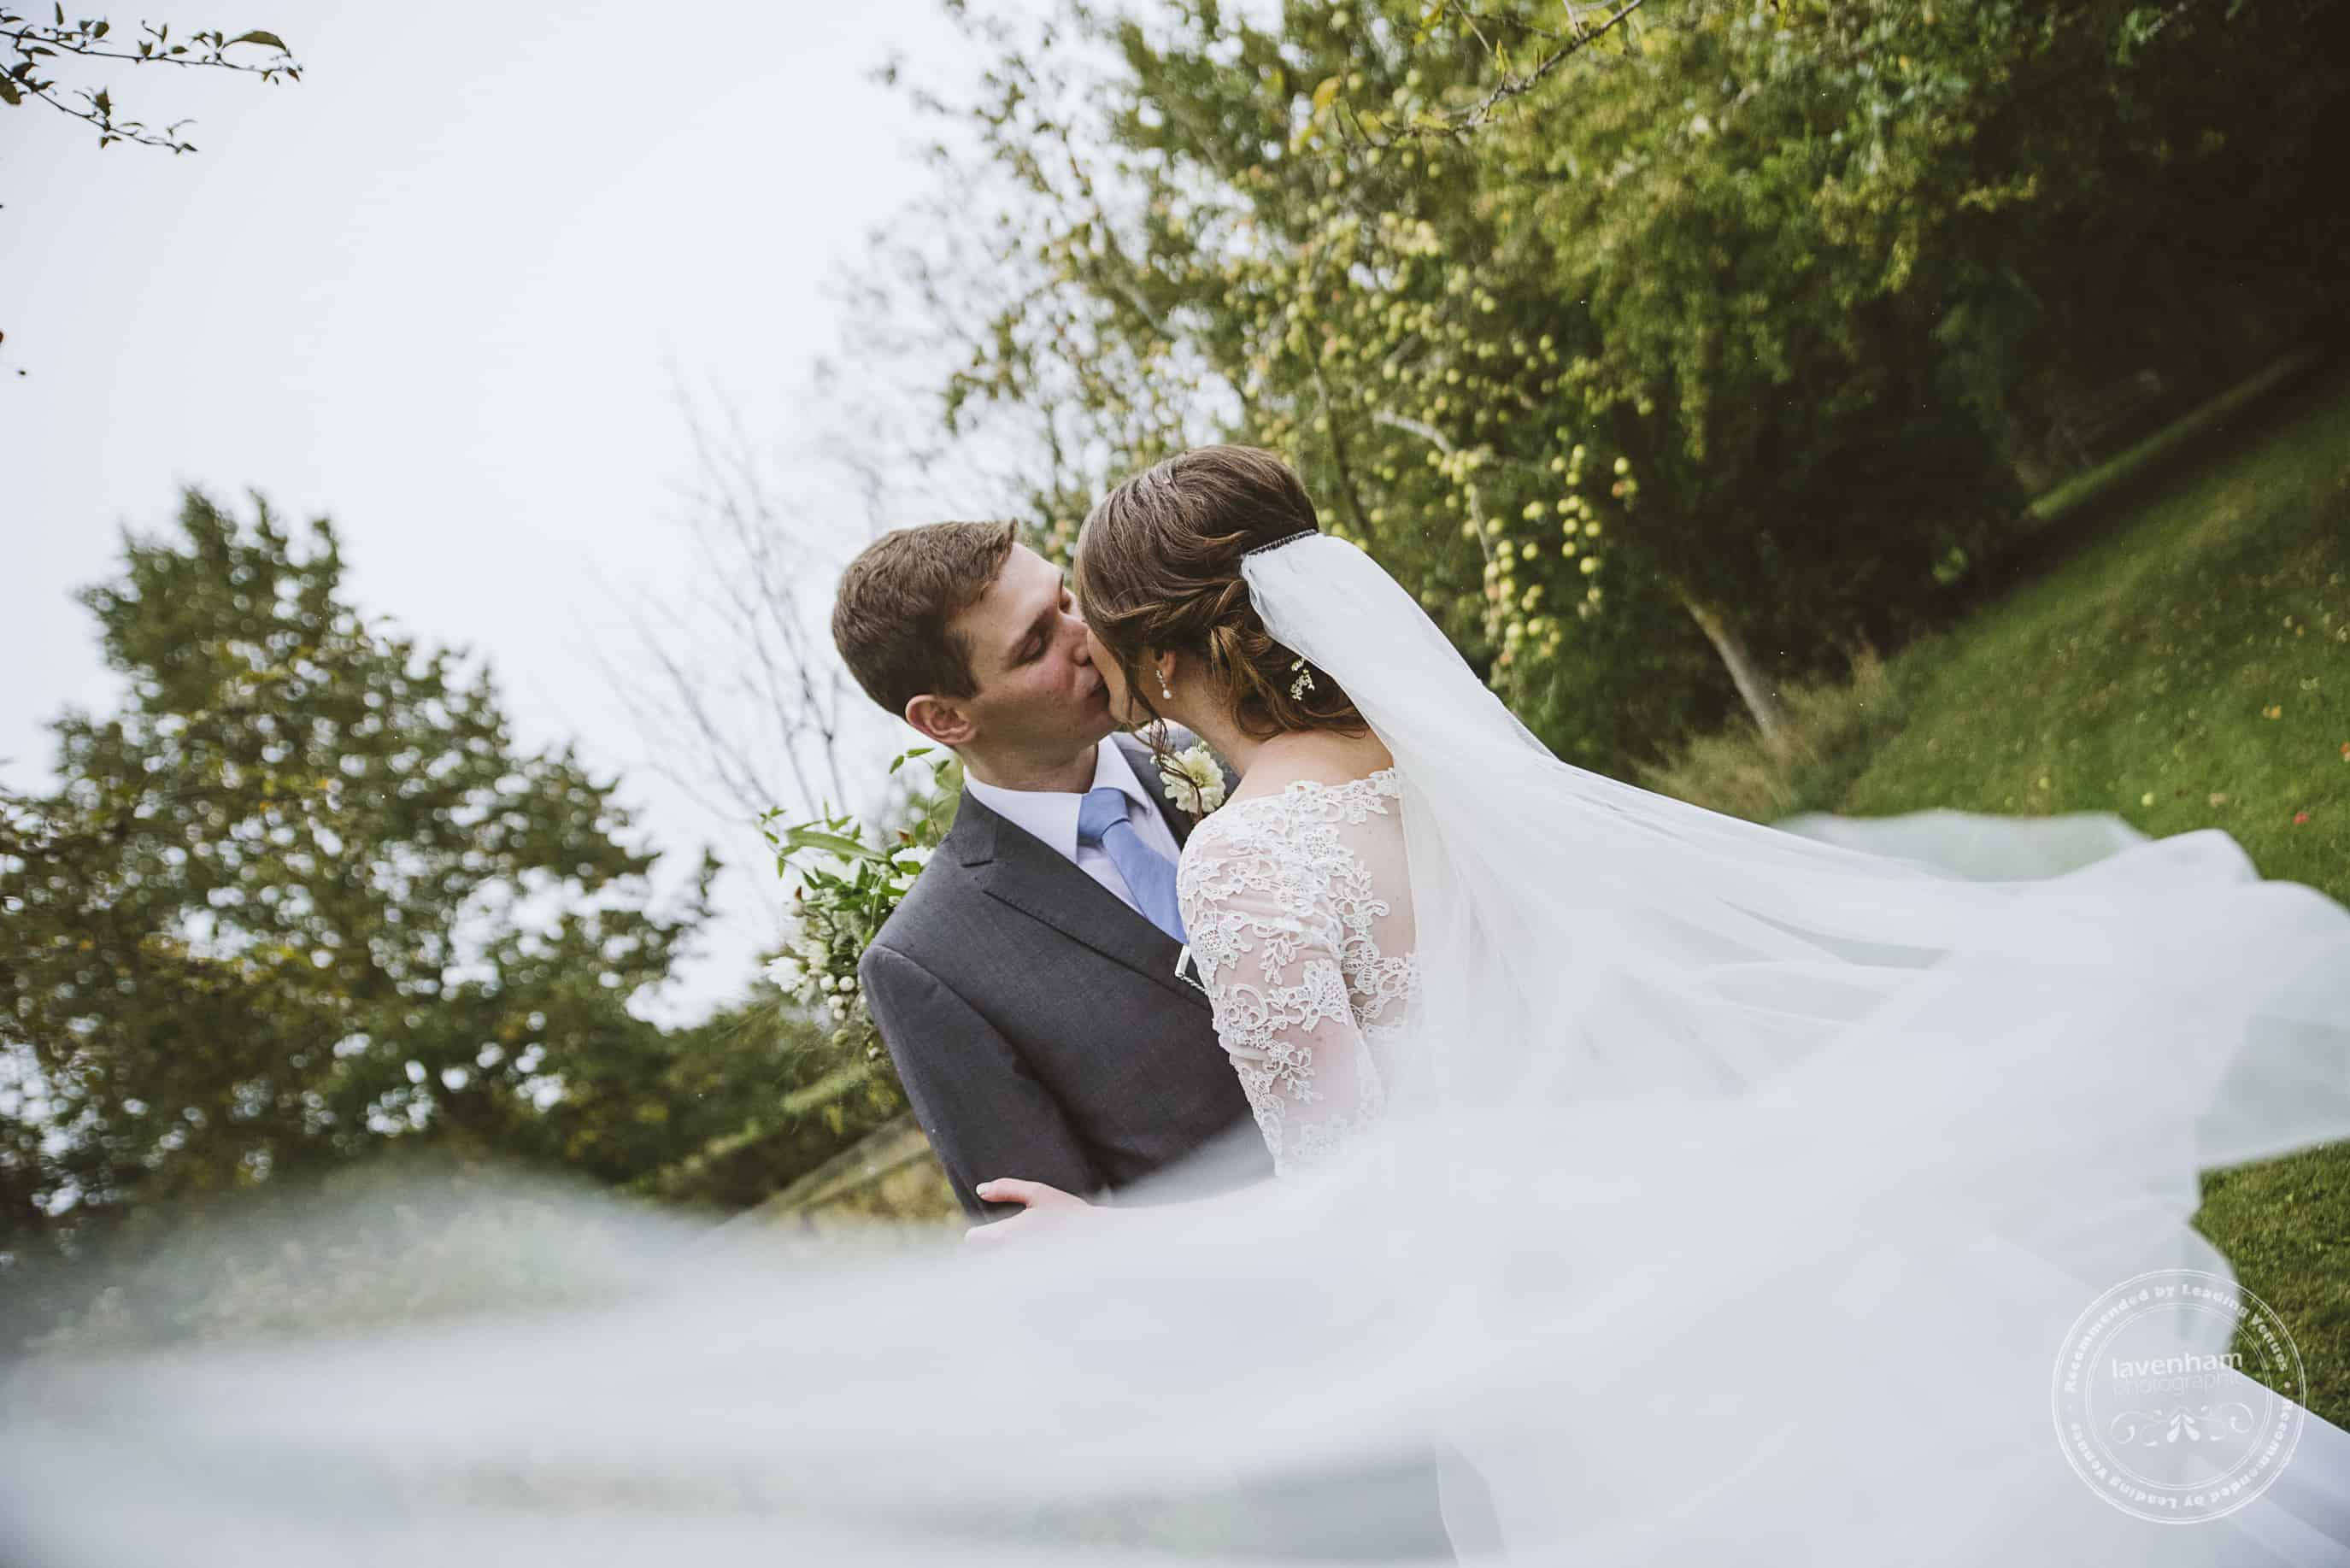 220918 Alpheton Barn Wedding Photography by Lavenham Photographic 102